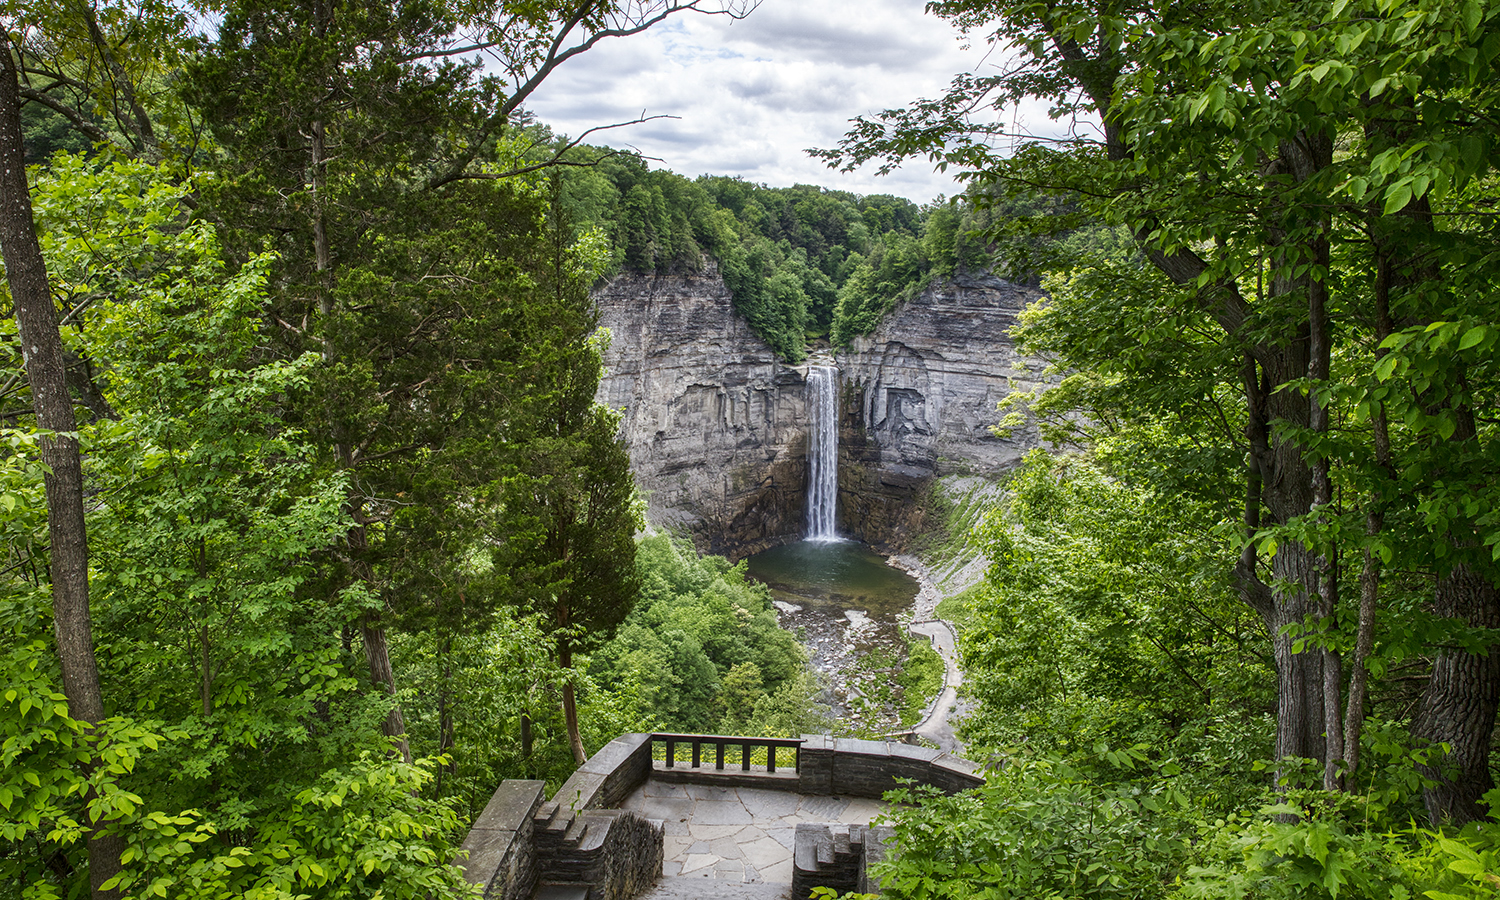 This week, we showcase the captivating beauty of summer in the Finger Lakes through a selection of works by HWS Chief Photographer Kevin Colton. Here, Colton captures a view from Taughannock Falls State Park in Trumansburg, N.Y.